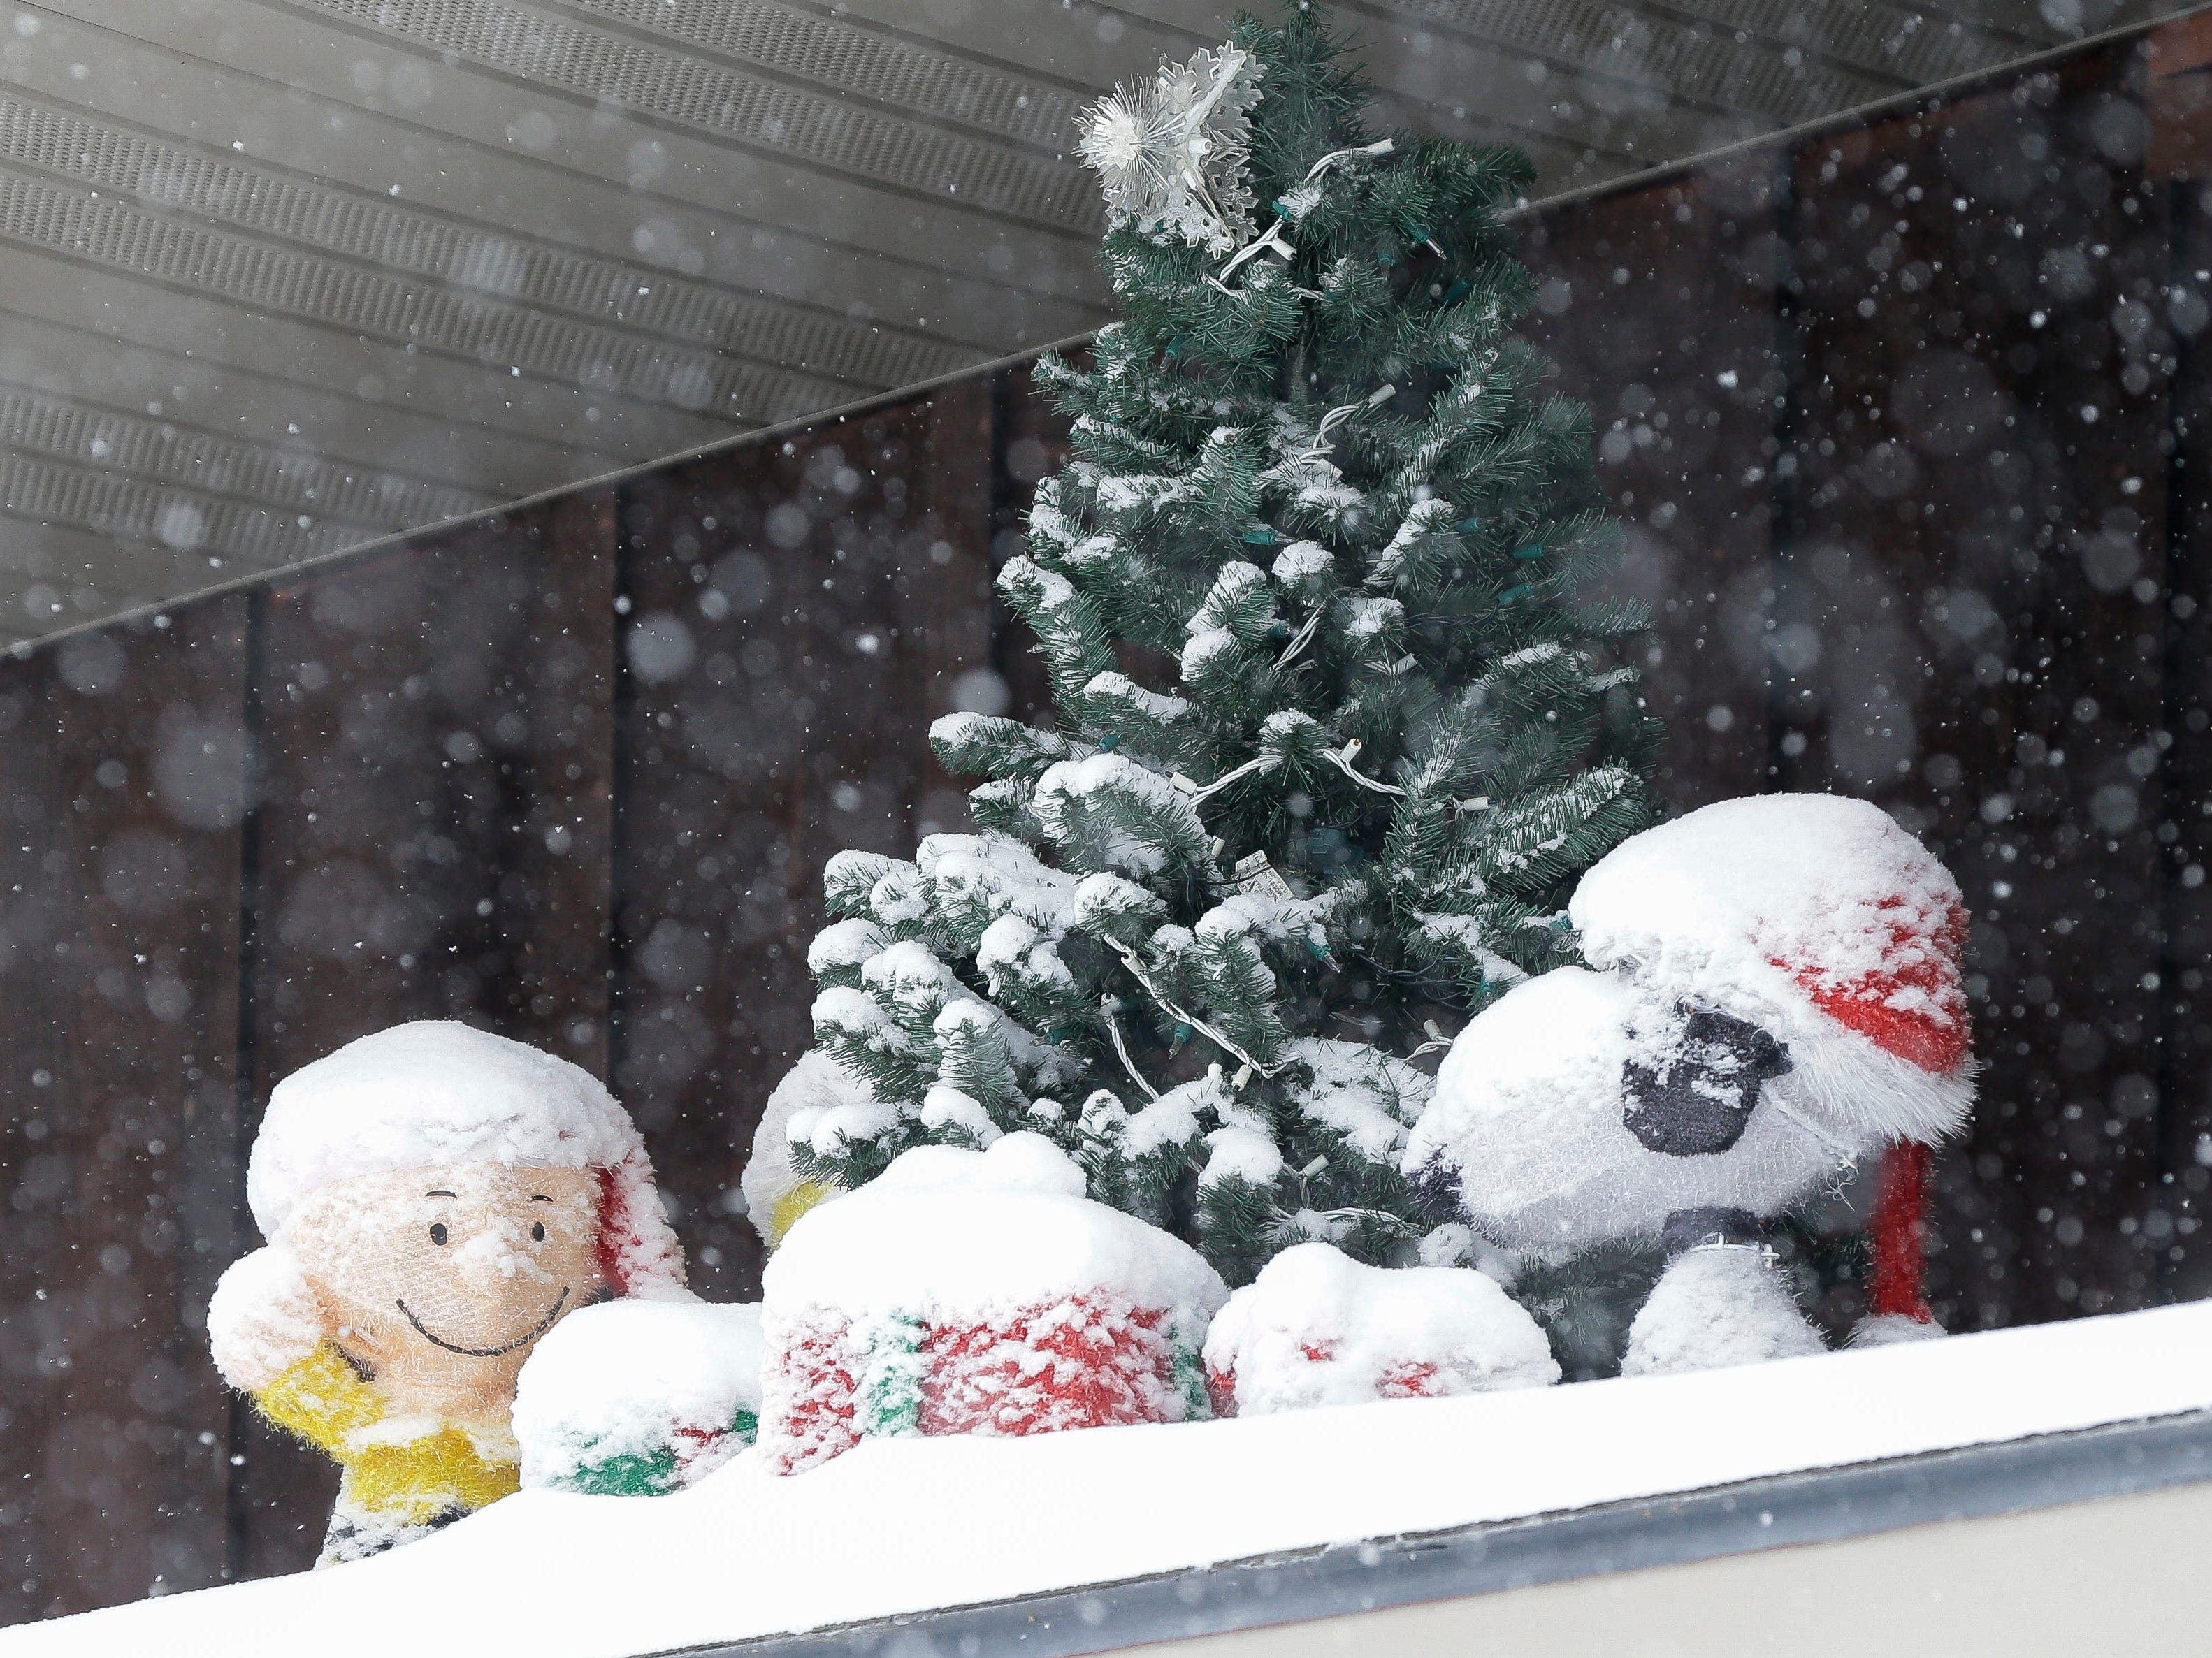 A Peanuts-themed display is covered by snow on Tuesday, February 12, 2019, in Stevens Point, Wis. A winter storm is expected to drop 8-11 inches of snow in central Wisconsin before clearing Tuesday night.